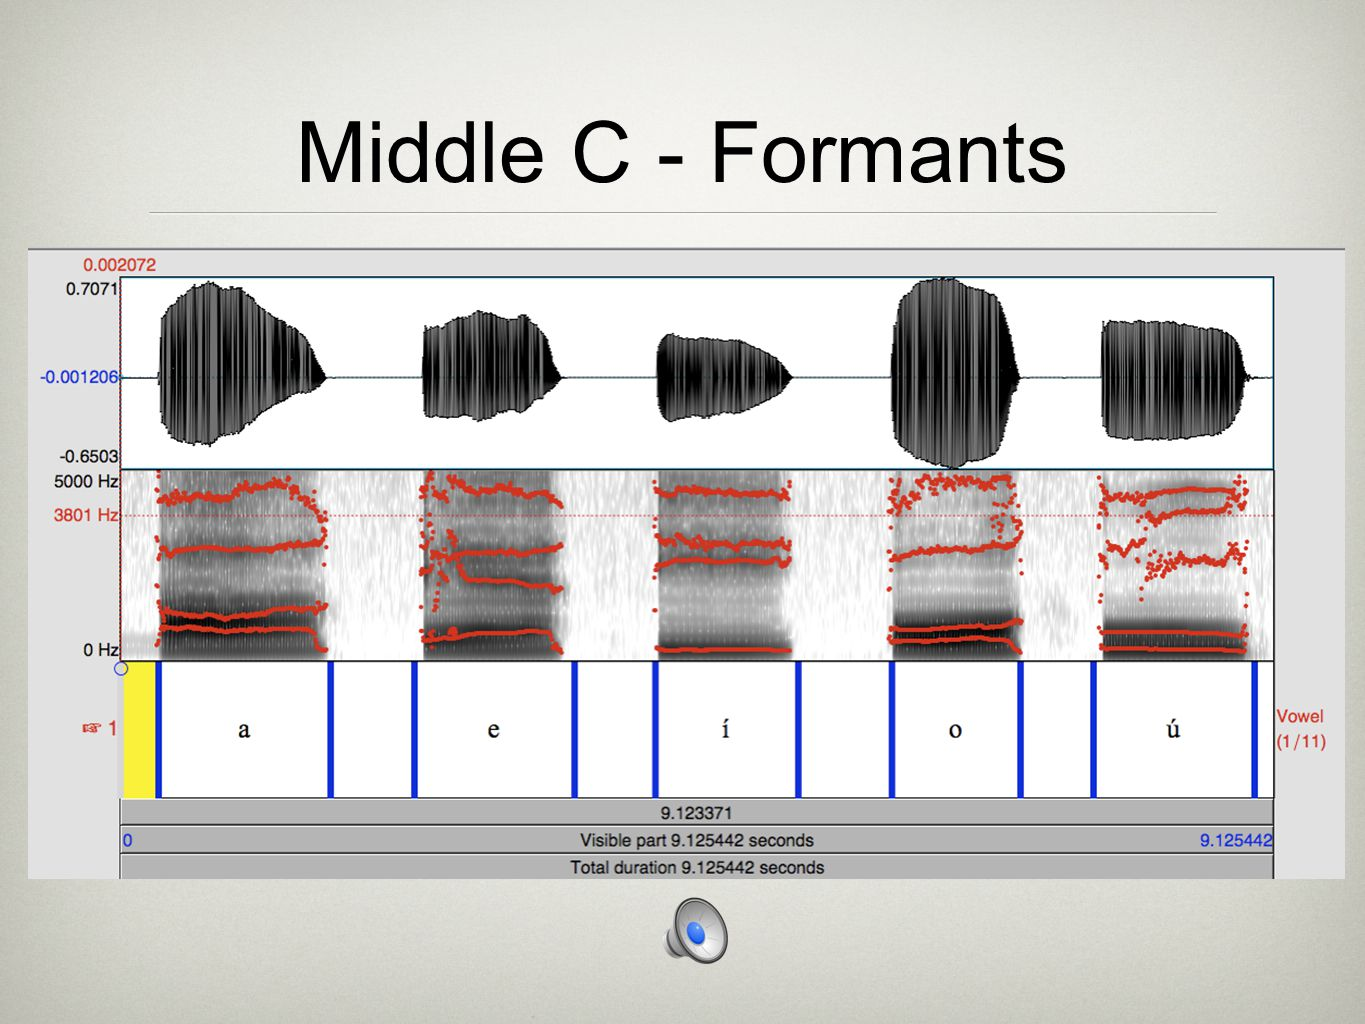 Middle C - Formants